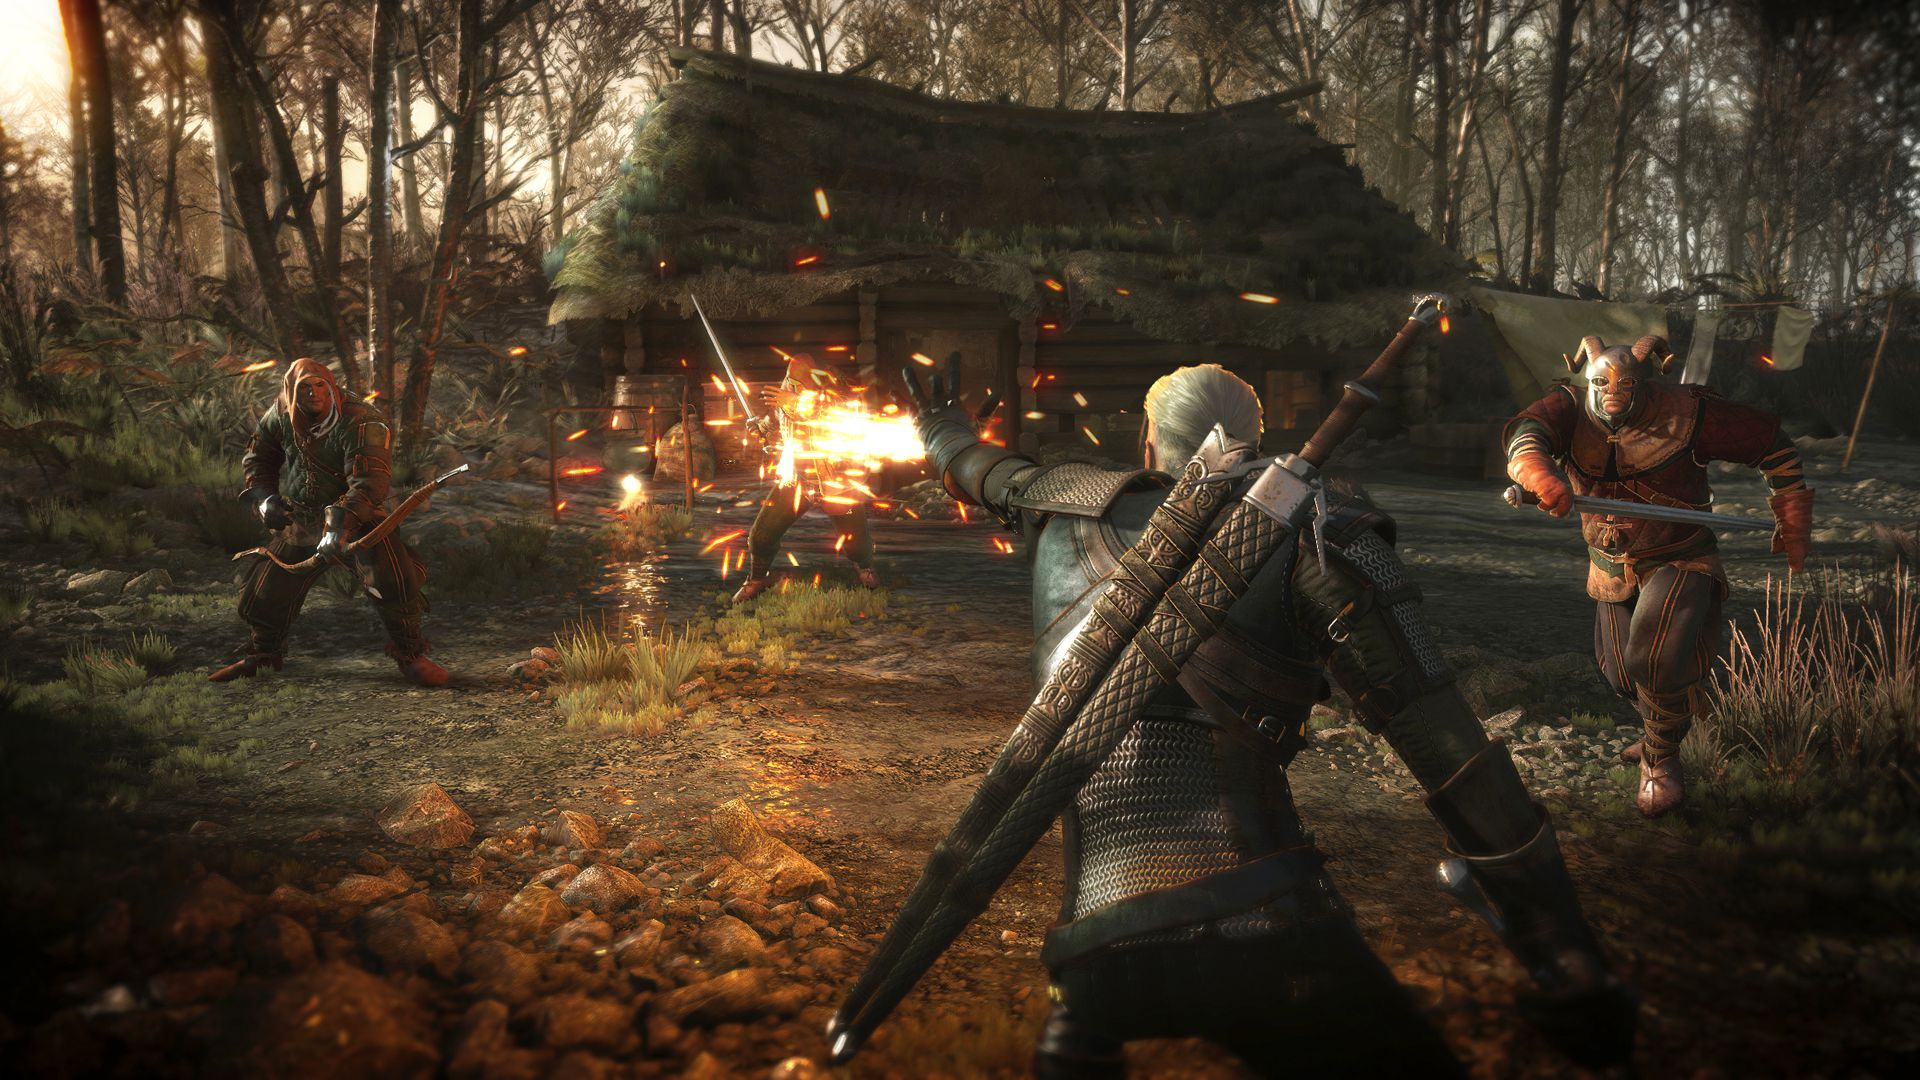 the_witcher_3_wild_hunt-geralt_torching_his_enemies_1407869453